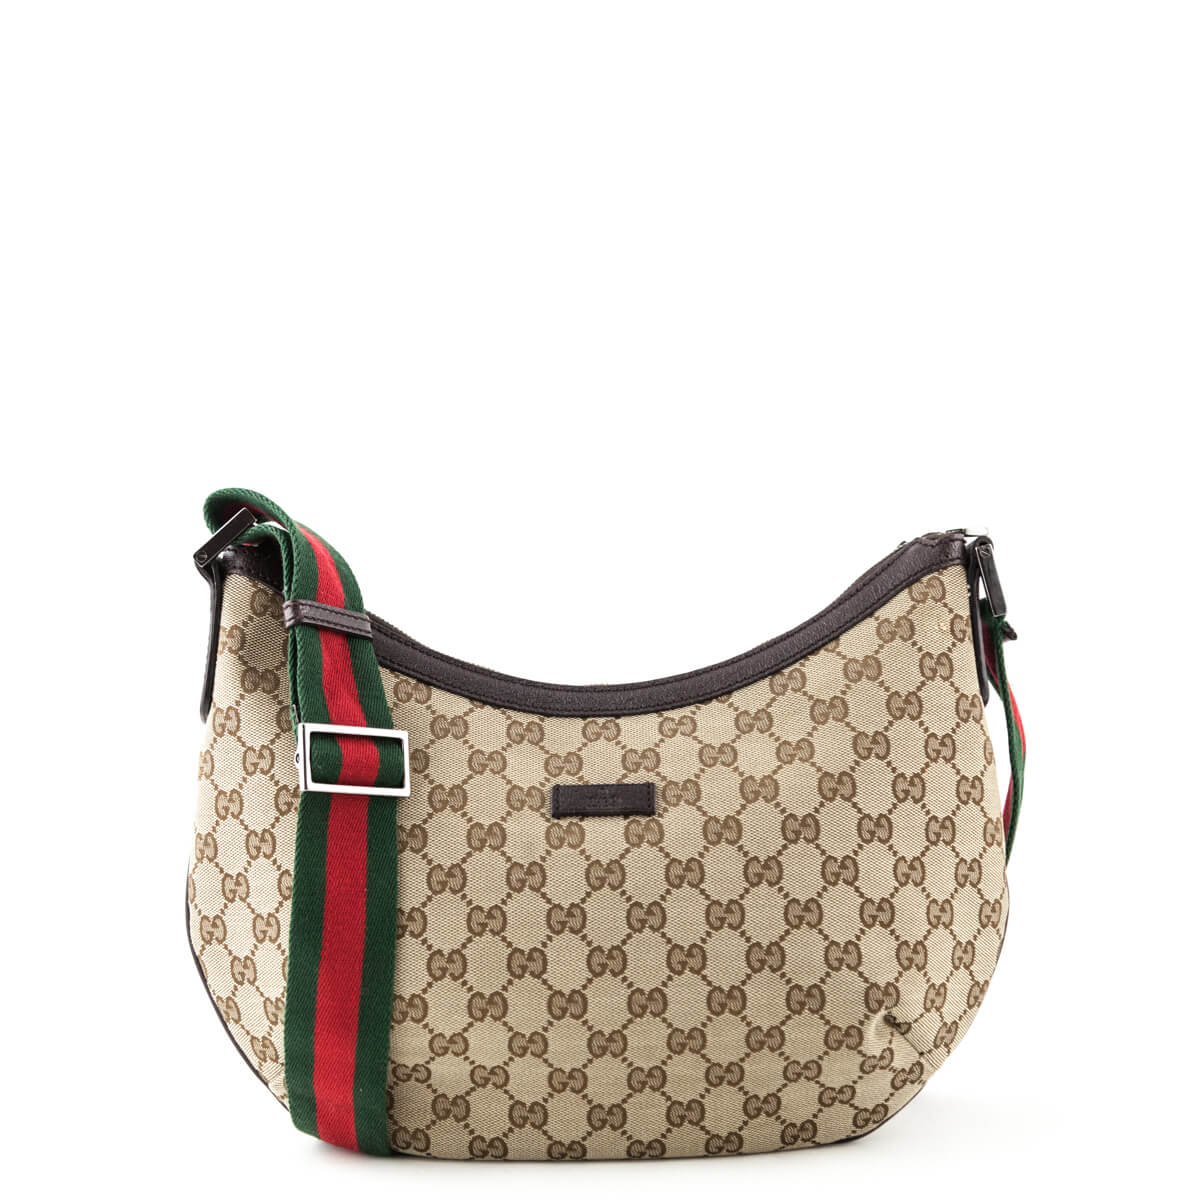 6db342ba0962 Gucci GG Monogram Canvas Web Messenger Bag - LOVE that BAG - Preowned  Authentic Designer Handbags ...